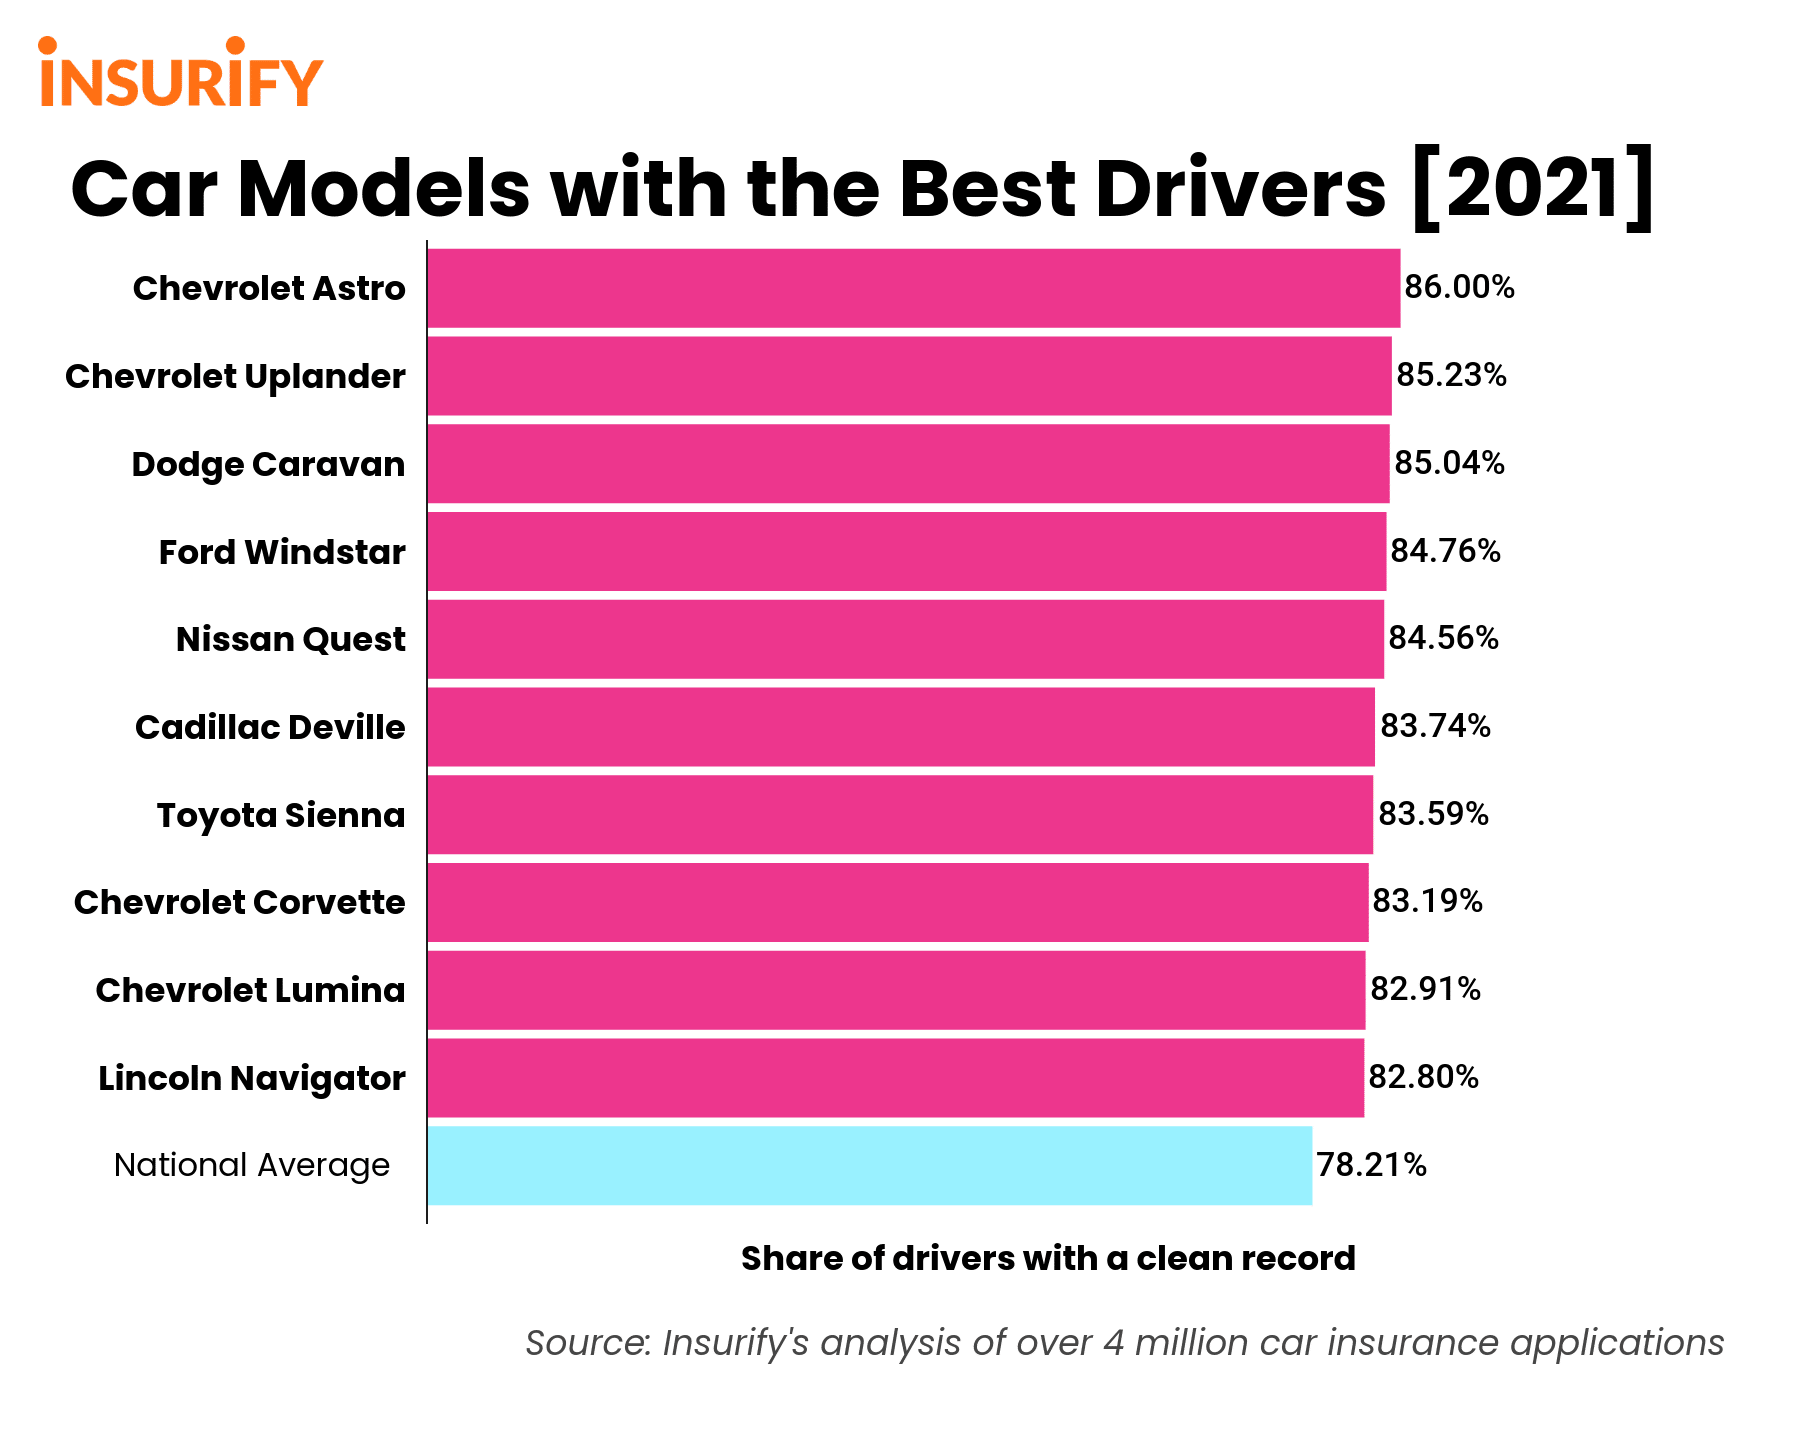 A bar graph showing the 10 car models with the best drivers.